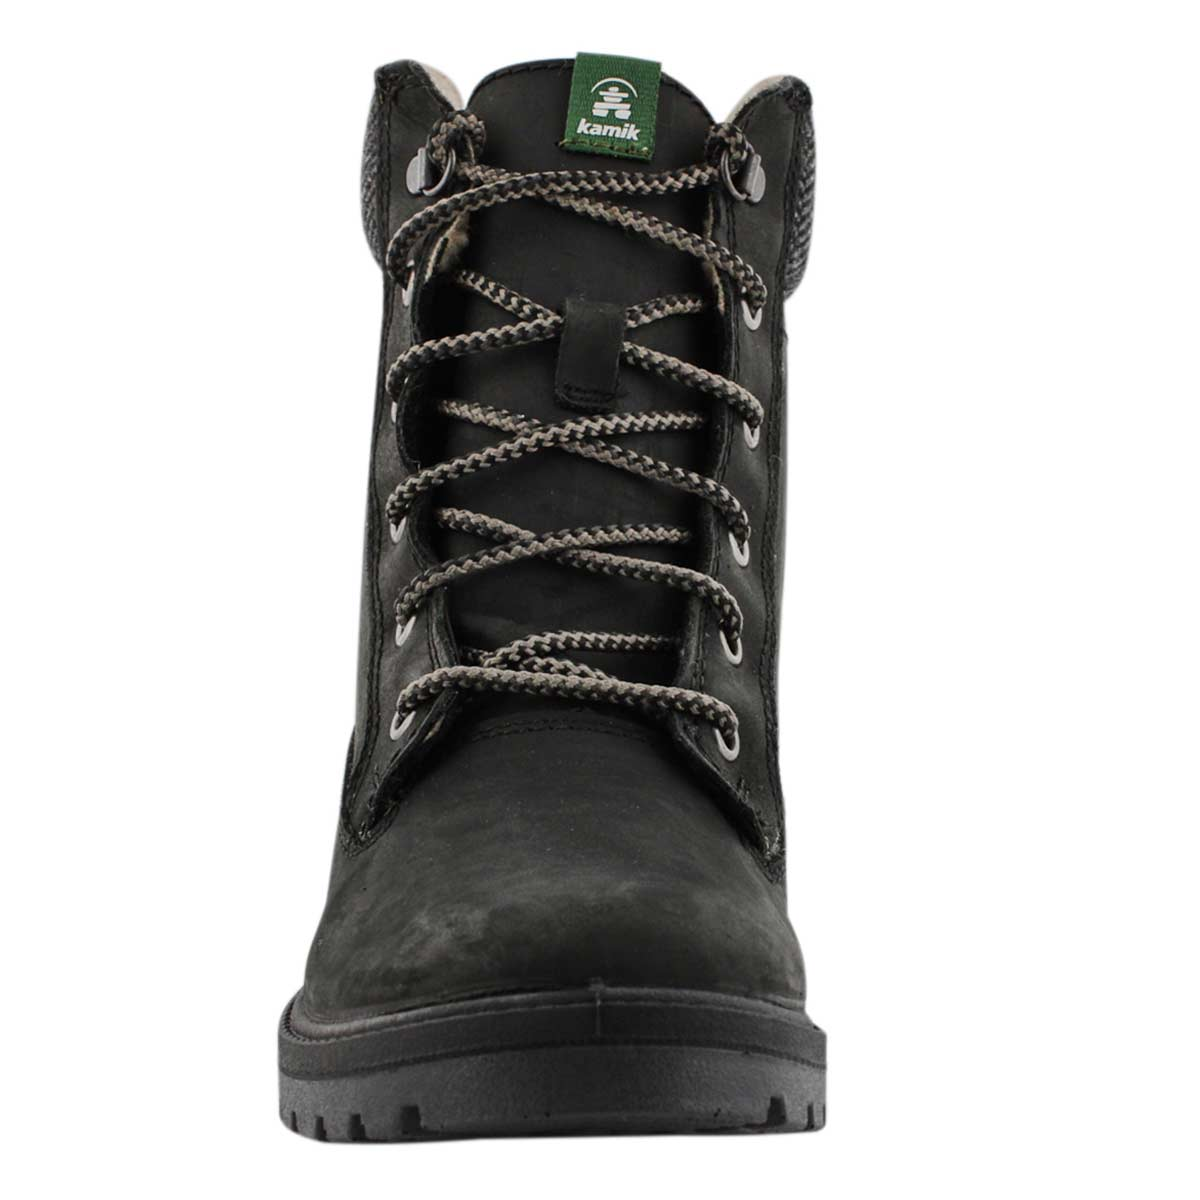 Lds Rogue black wtpf winter boot